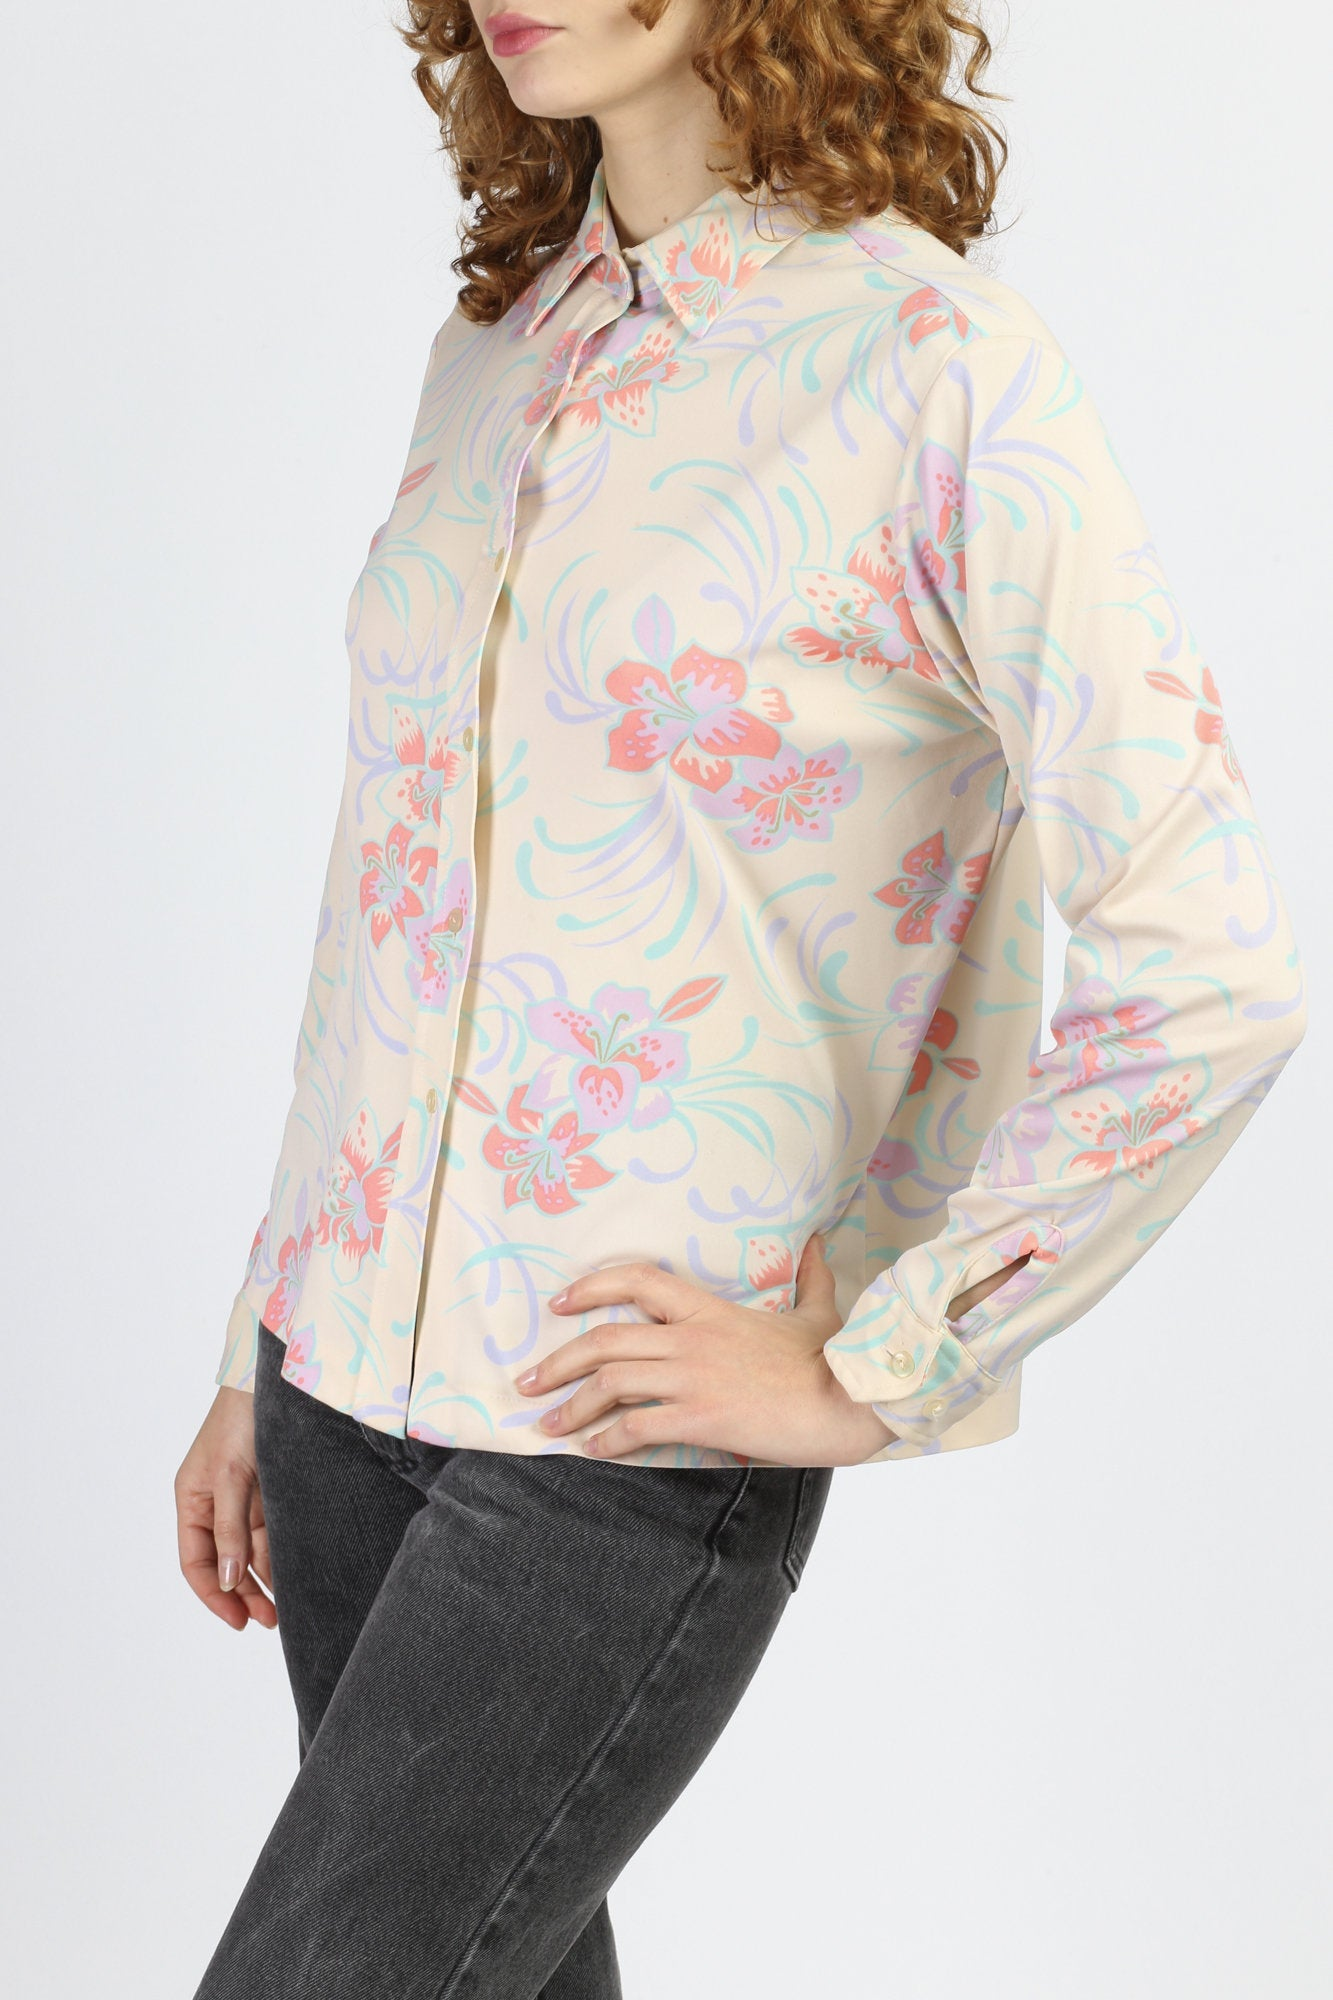 70s Floral Pointed Collar Top - Extra Large